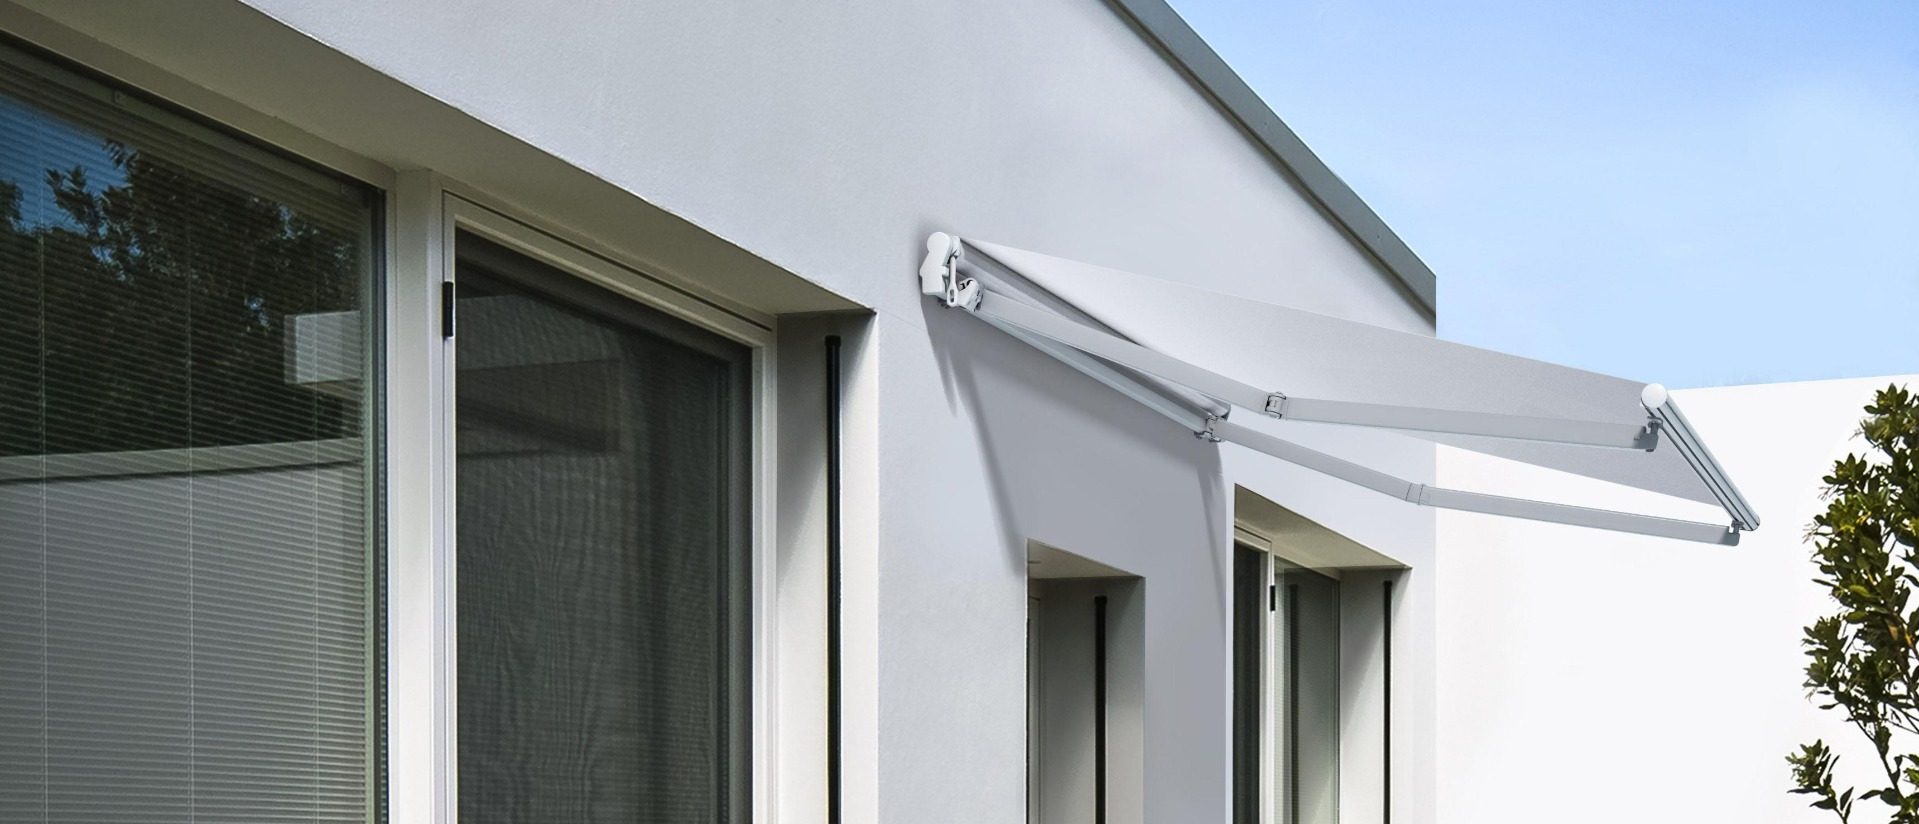 Palladio 2020 Retractable Awning System